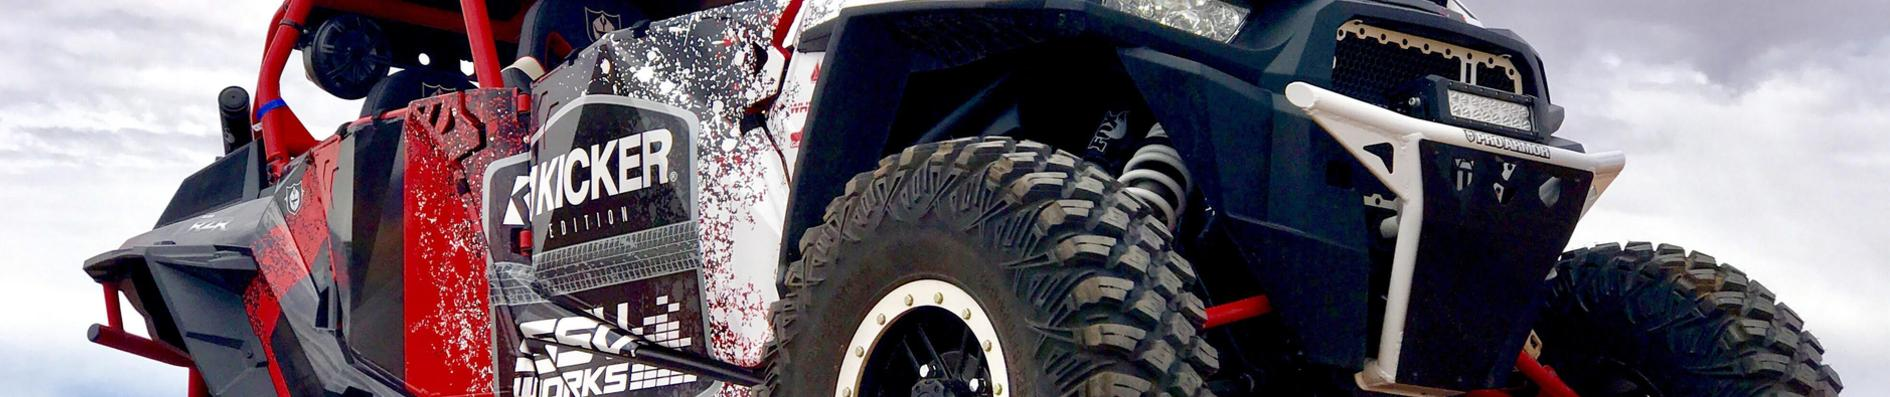 UTV_SidebySide_audio_speakers_polaris RZR speakers_polaris ranger speakers_can-am speakers_canton ohio_alliance ohio_Honda Pioneer Speakers_UTV wheels Ohio_Fuel UTV Wheels Ohio